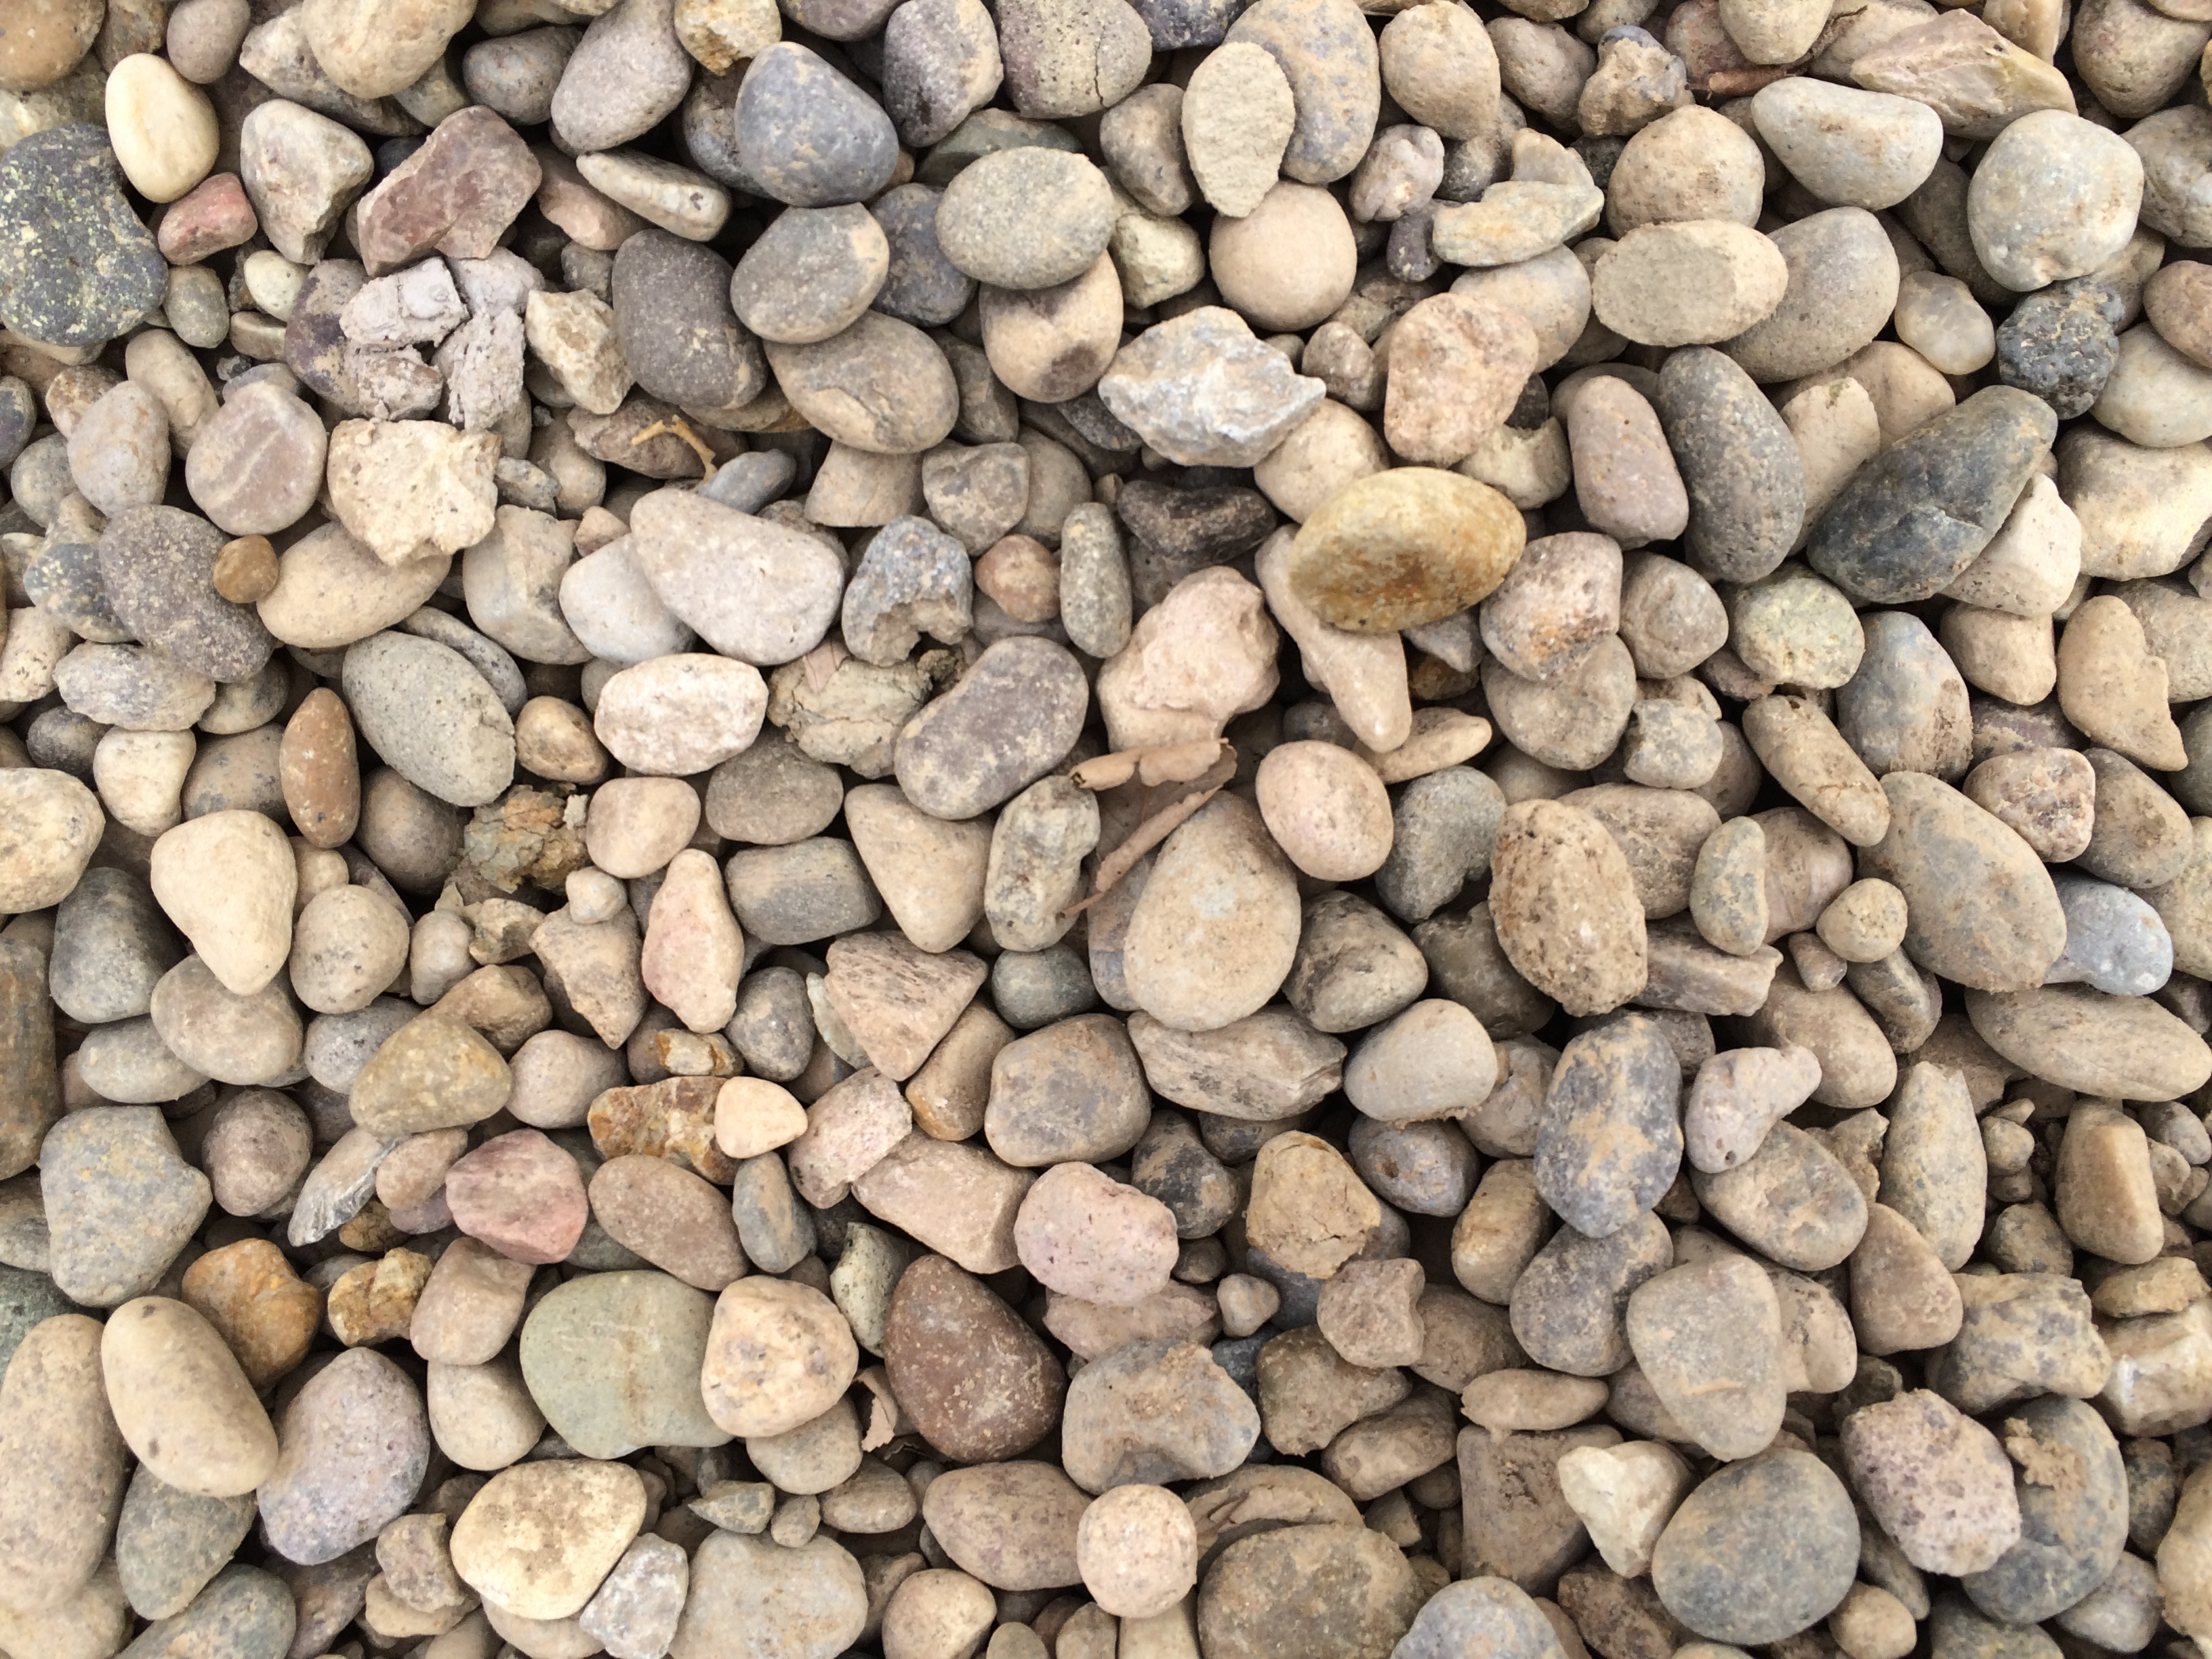 3 8 Inch Stone With Stone Dust : Gravel santa fe nm albert montano sand and